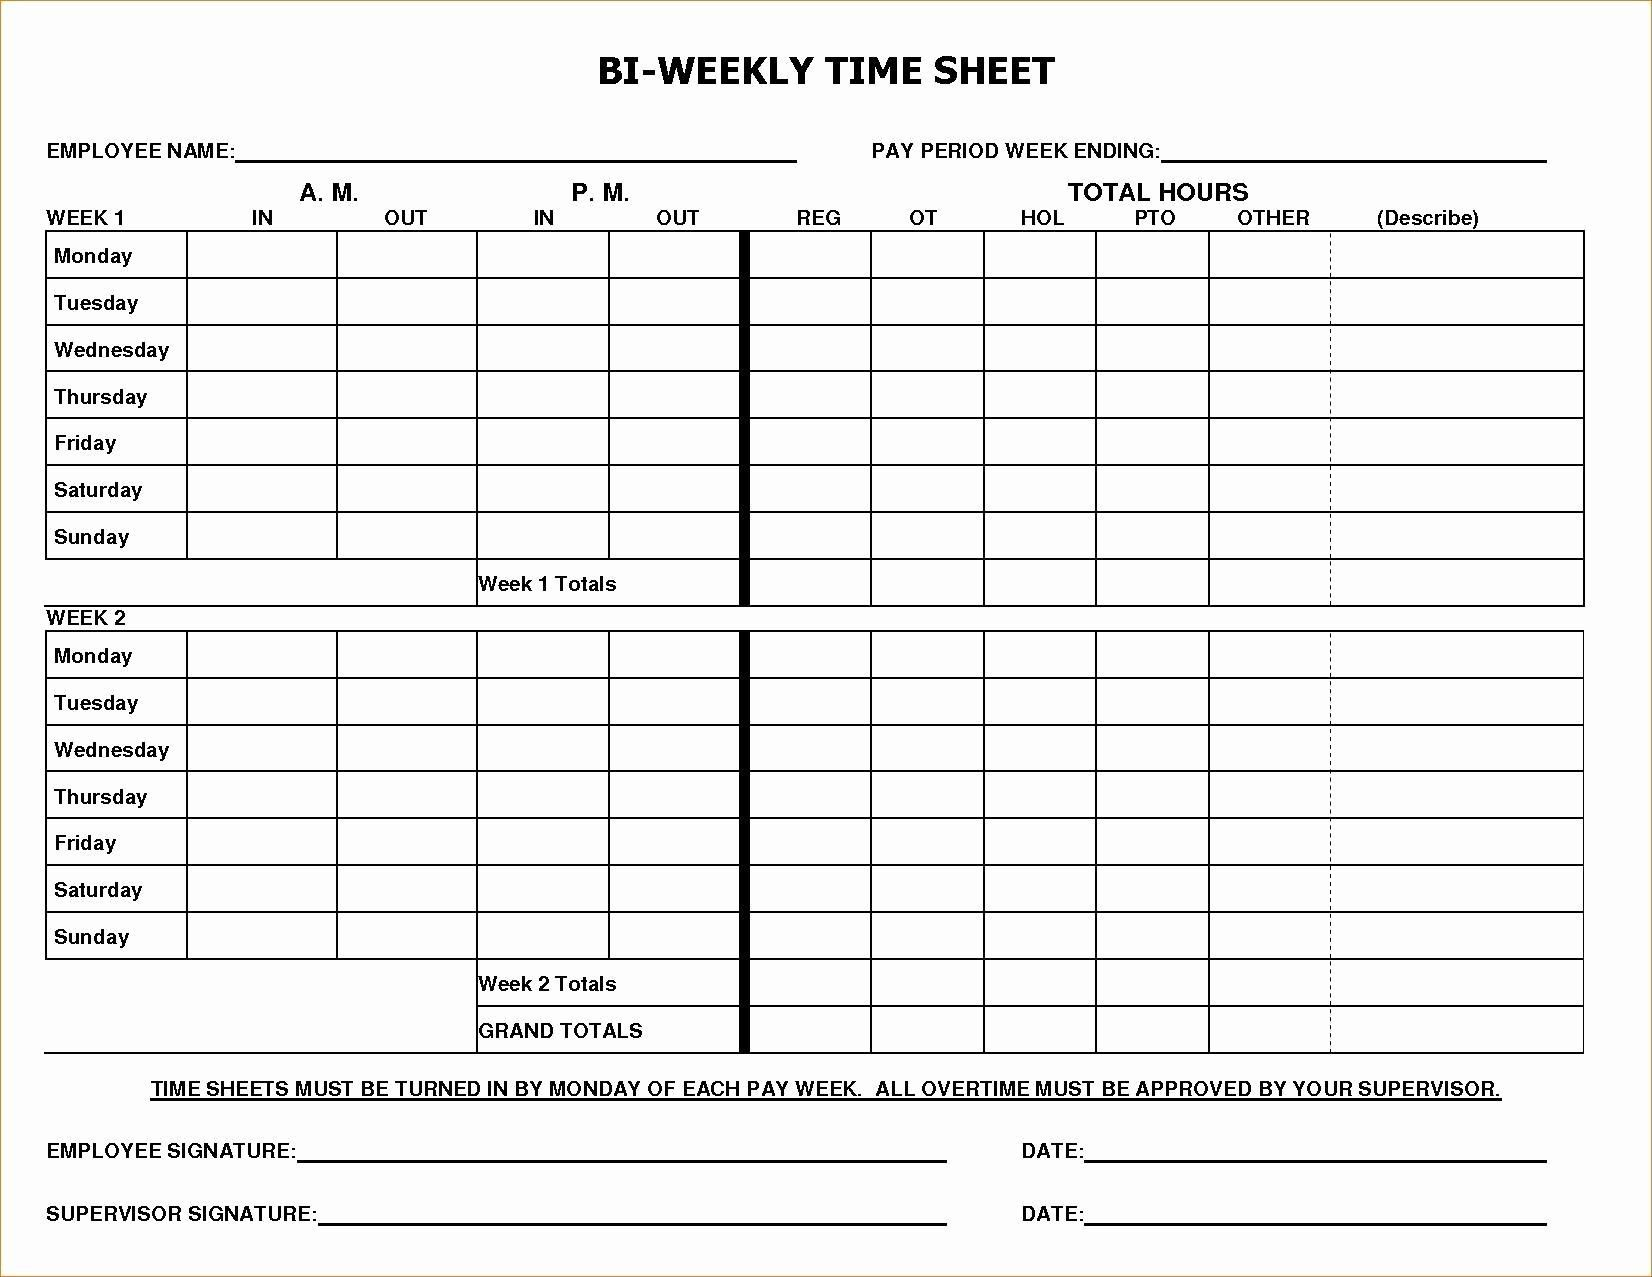 003 Dreaded Employee Time Card Form Image  Timesheet Template Excel Sheet FreeFull